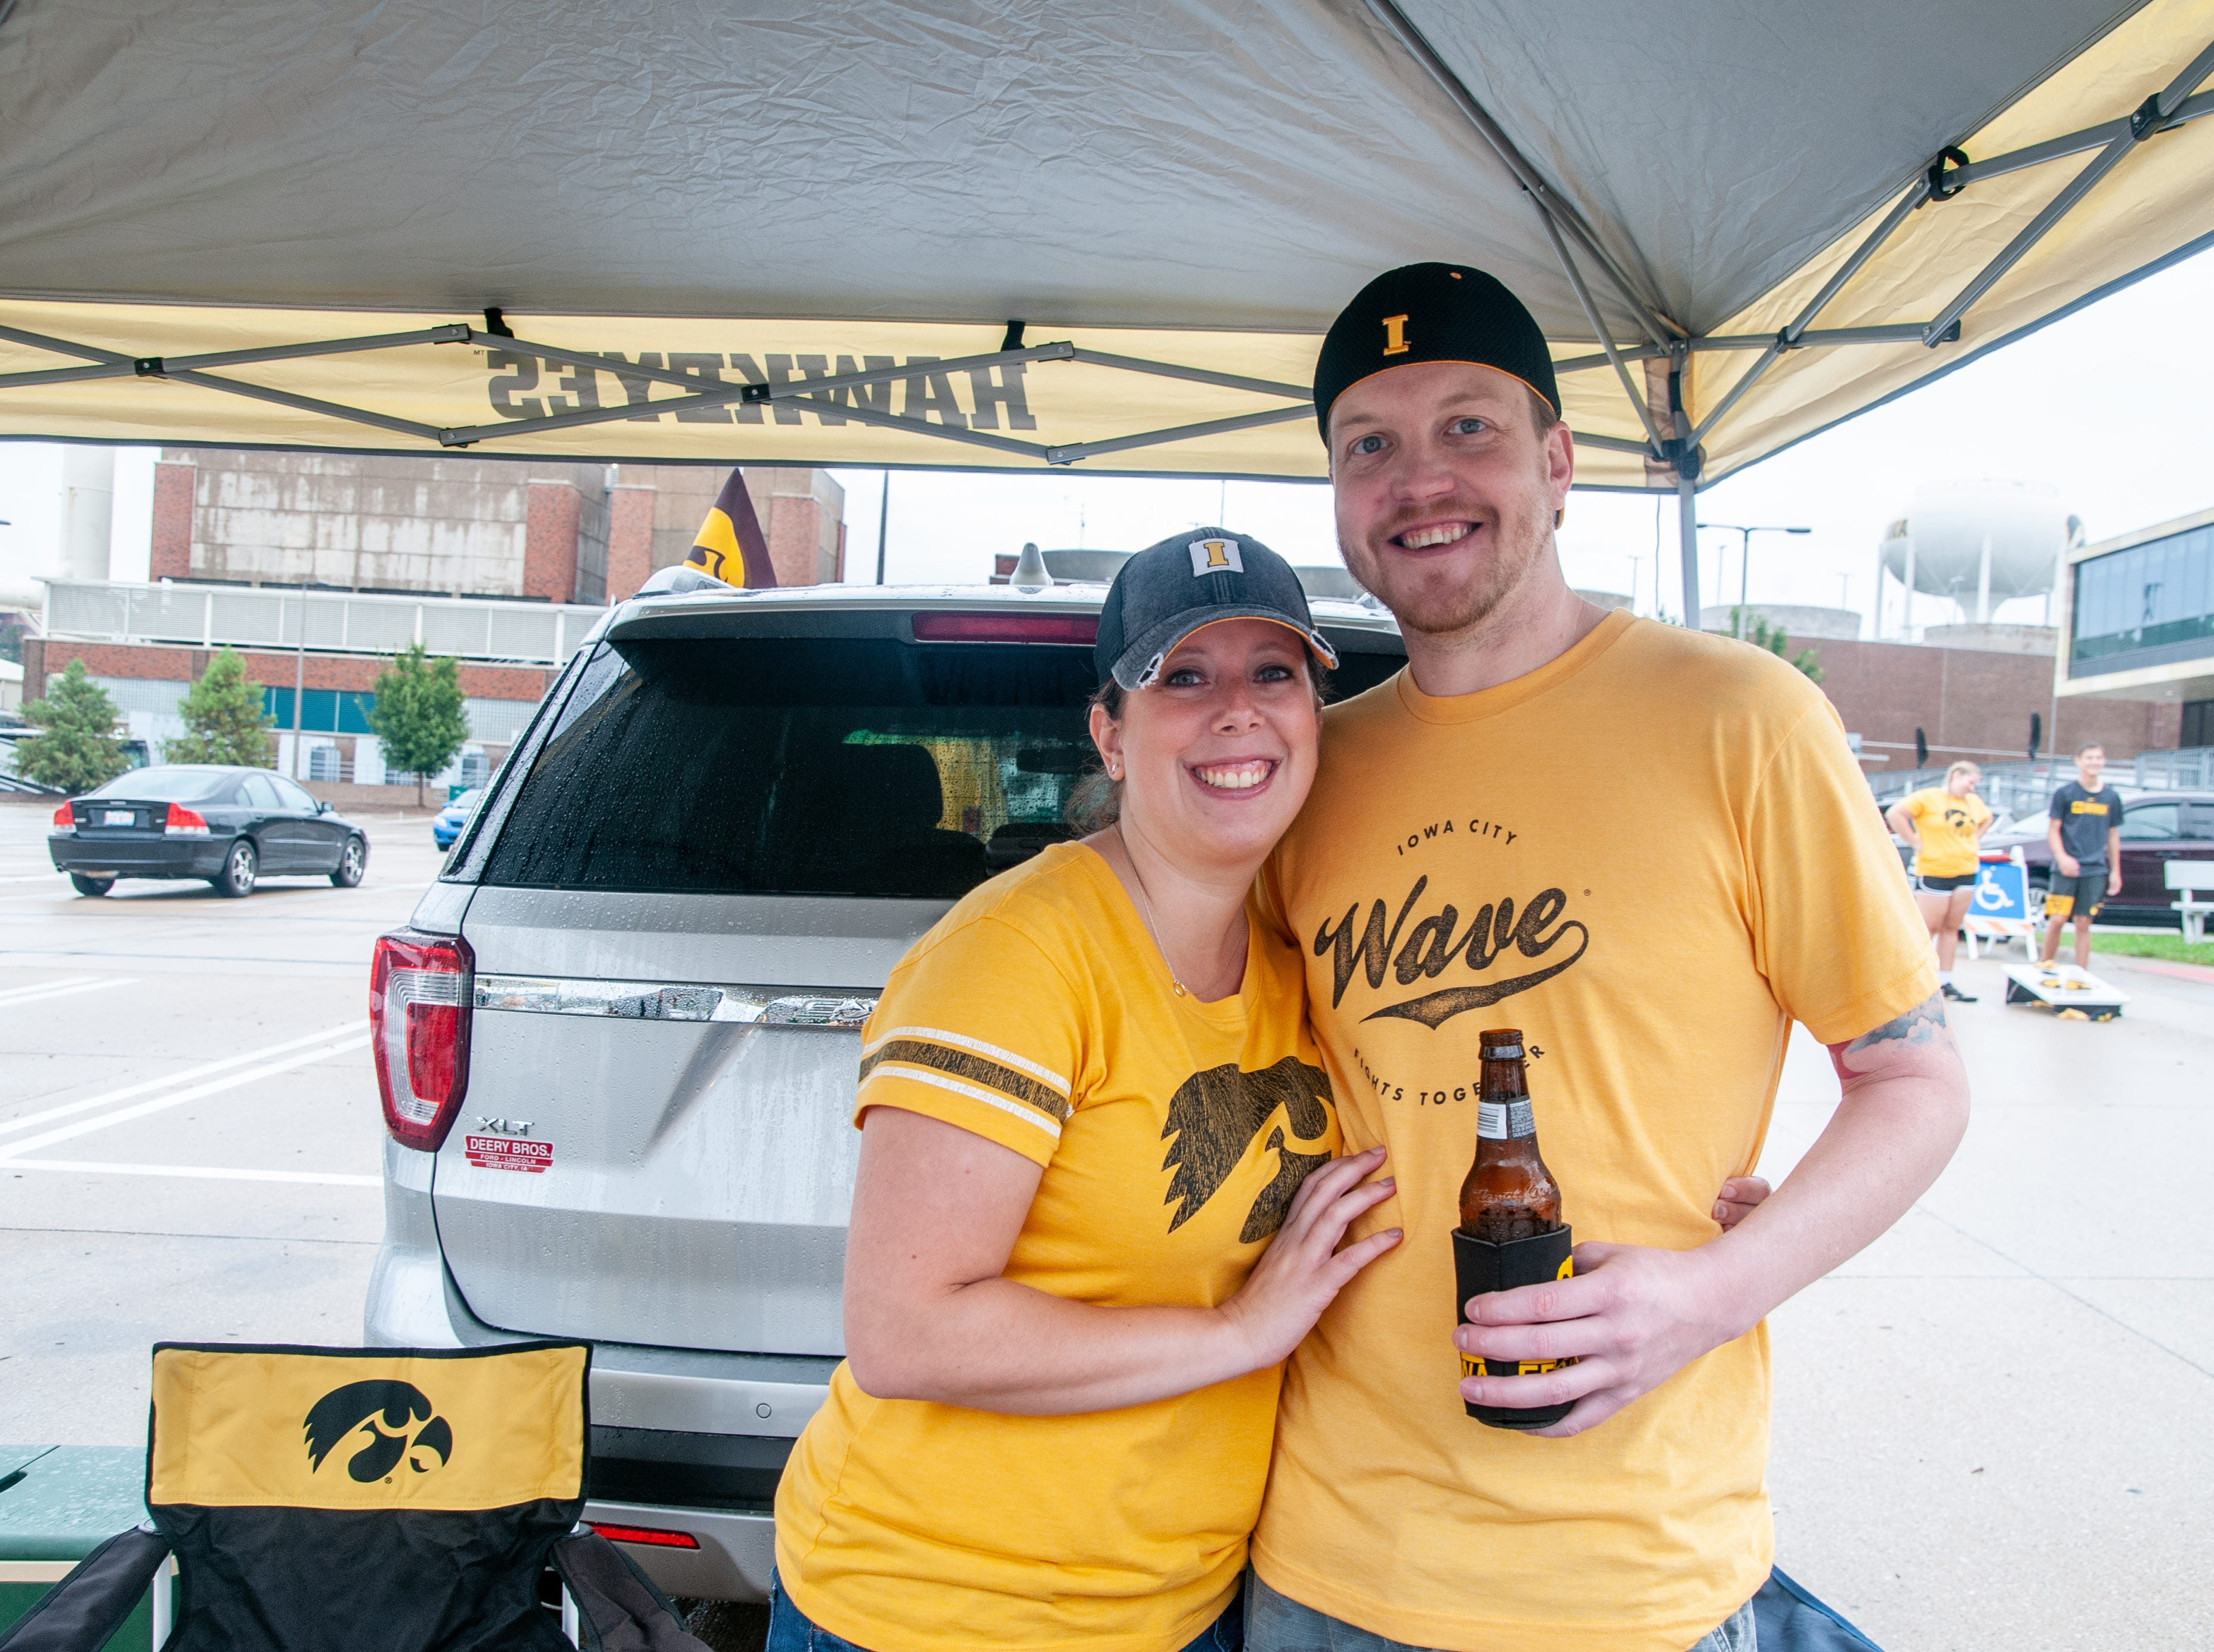 Melissa Johnson, 33, (left), and Ryan Thompson, 36, of Cedar Rapids, Saturday, Sept. 1, 2018, while tailgating before the Iowa game against Northern Illinois in Iowa City.